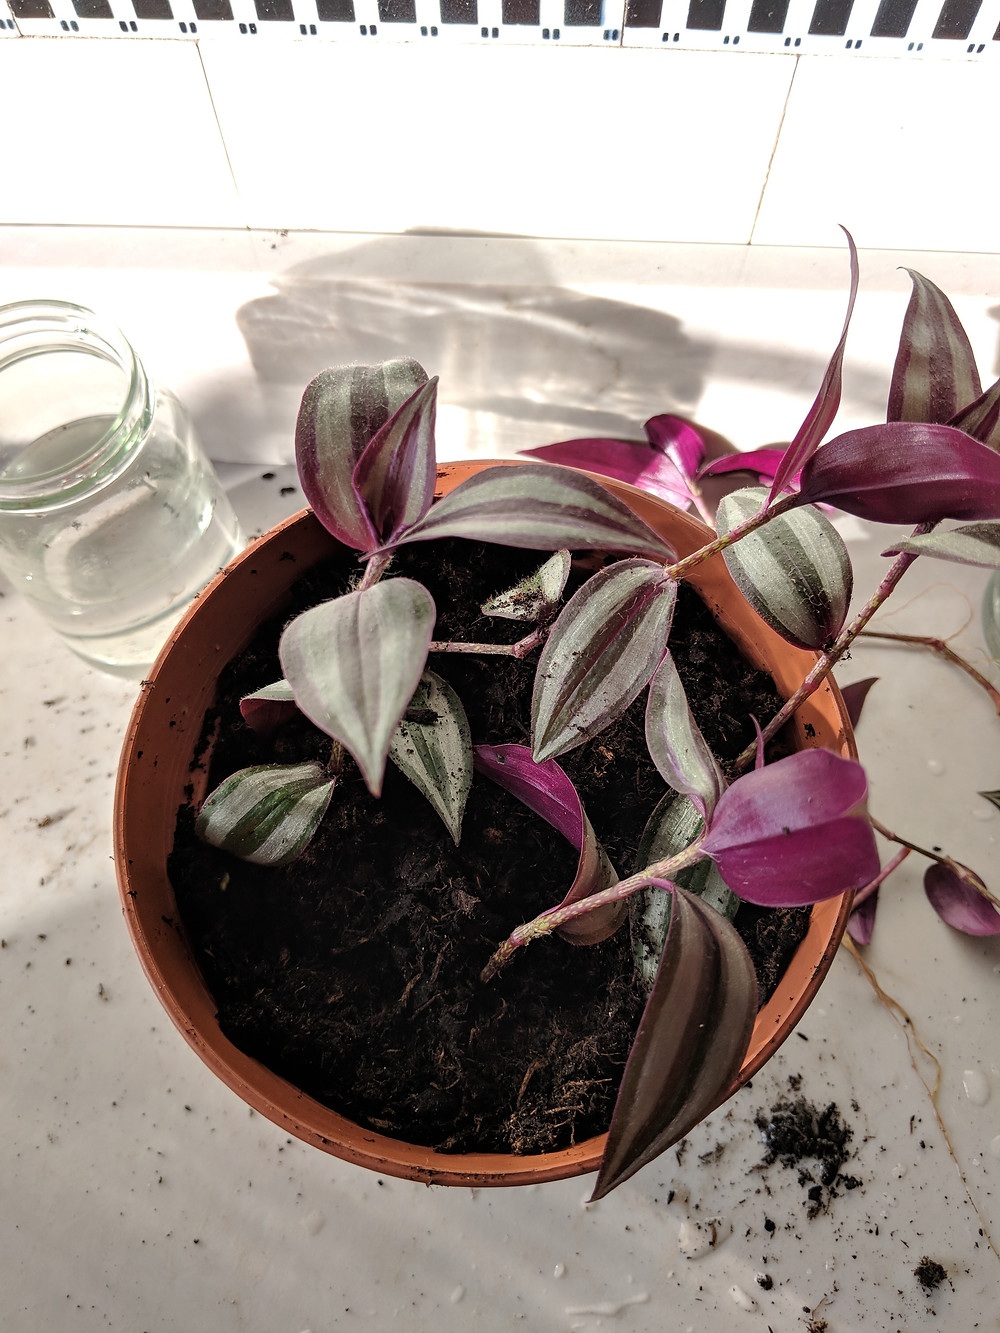 Potted tradescantia cuttings from above. There is spilt soil on the countertopu